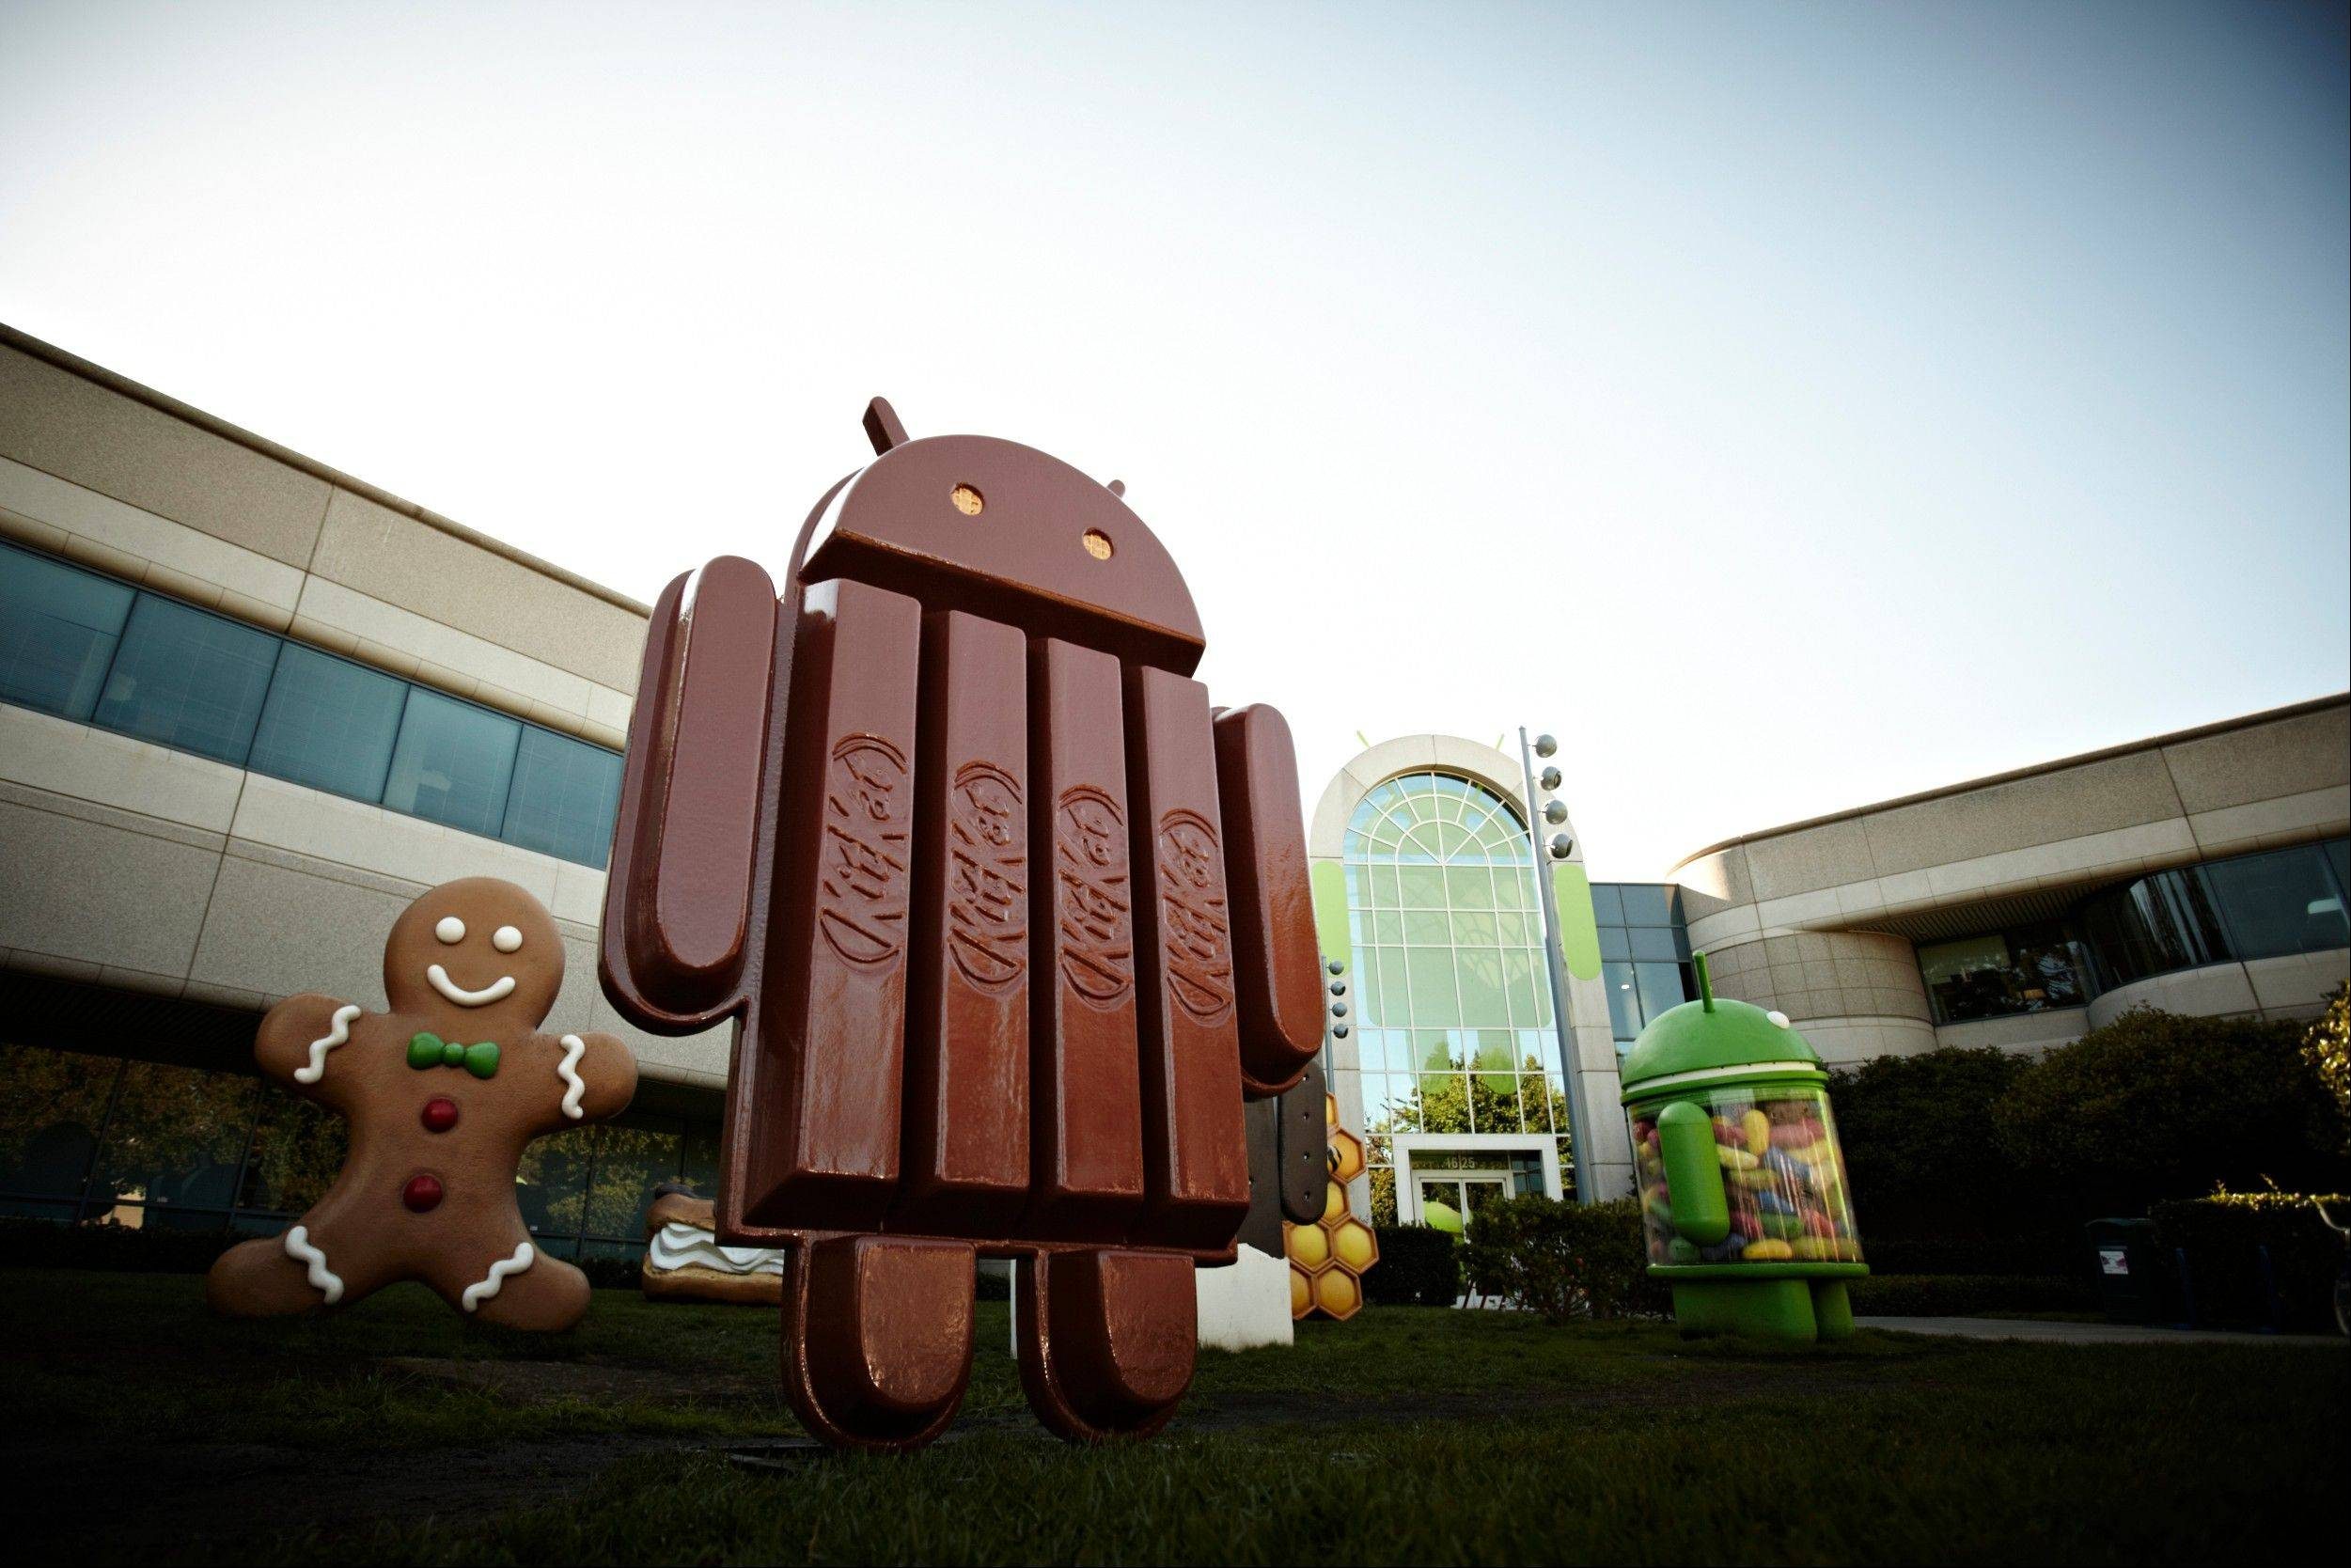 This undated product image provided by Google Inc. shows the new Kit Kat bar Android statue outside Google Inc. headquarters in Mountain View, CA. Google is naming its new Android operating system after the chocolate bar. The Android 4.4 KitKat system is expected to launch in October 2013.